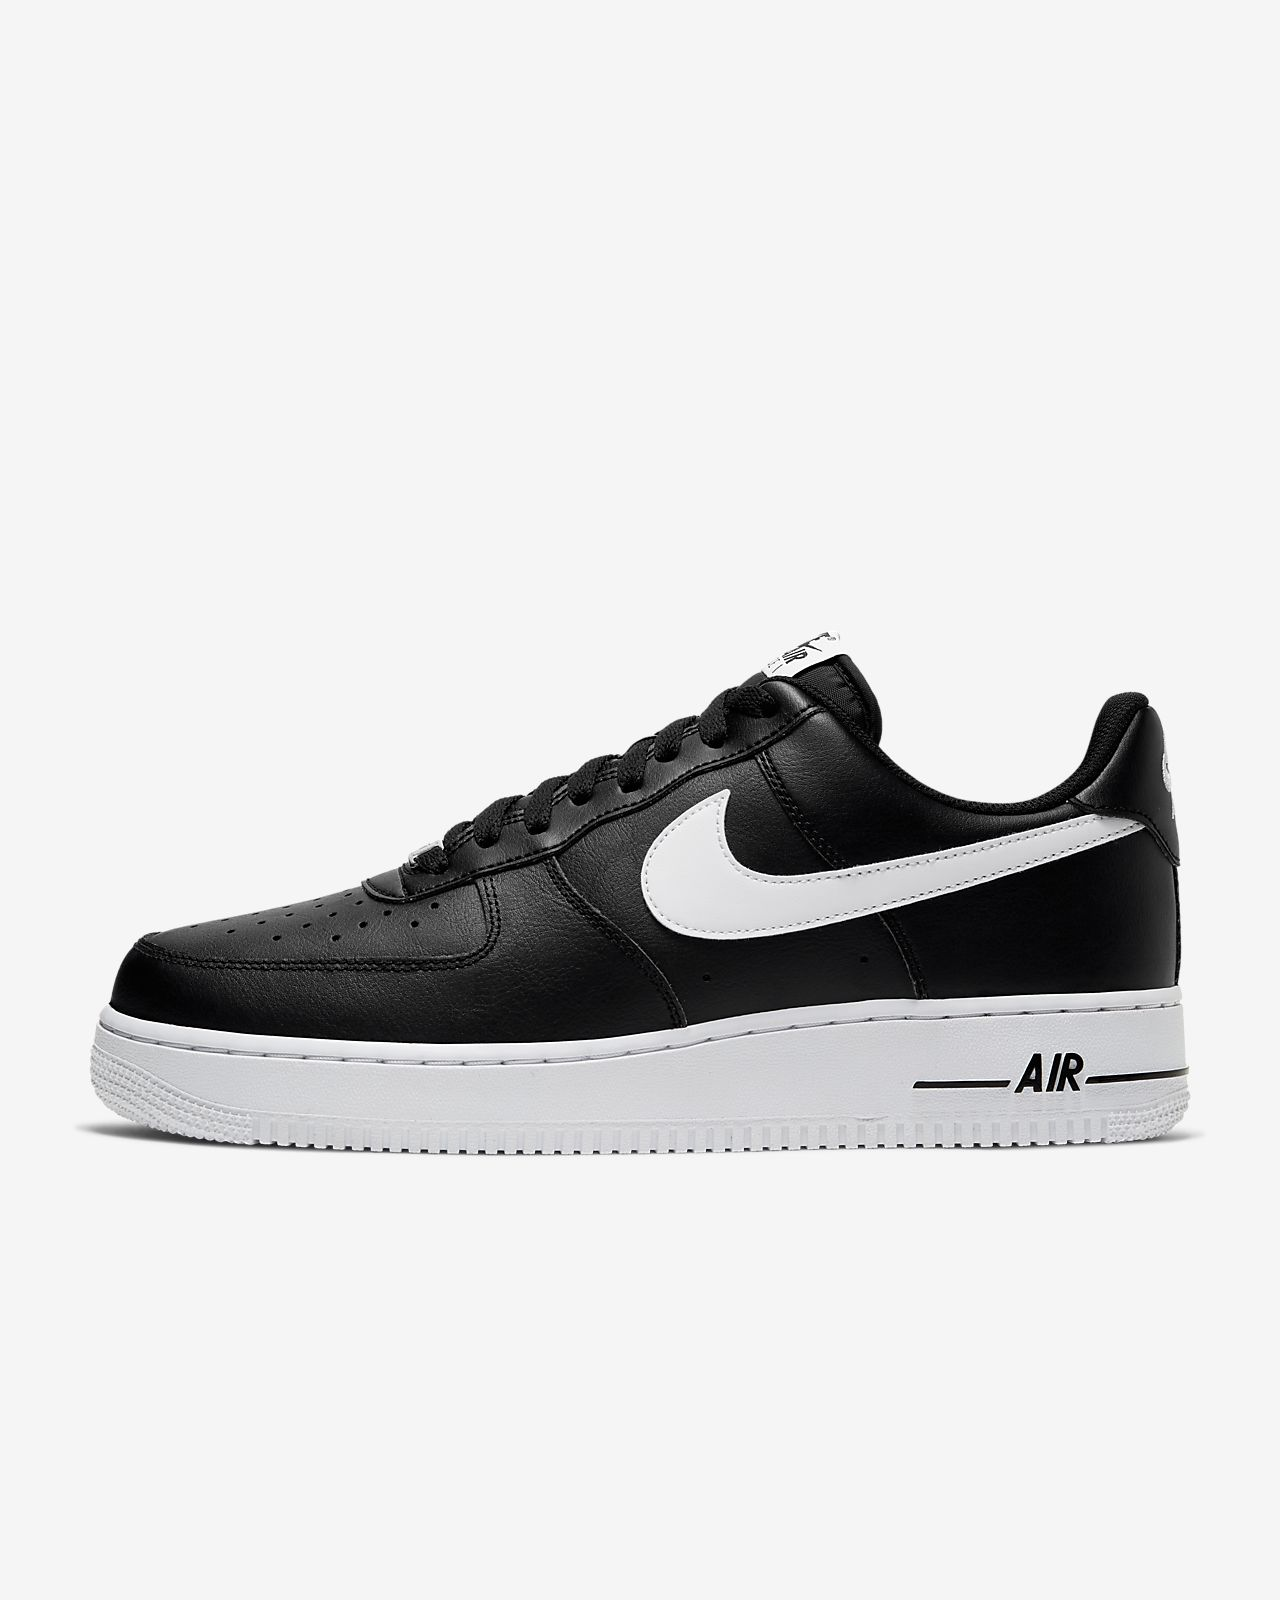 2nike zapatillas hombres air force